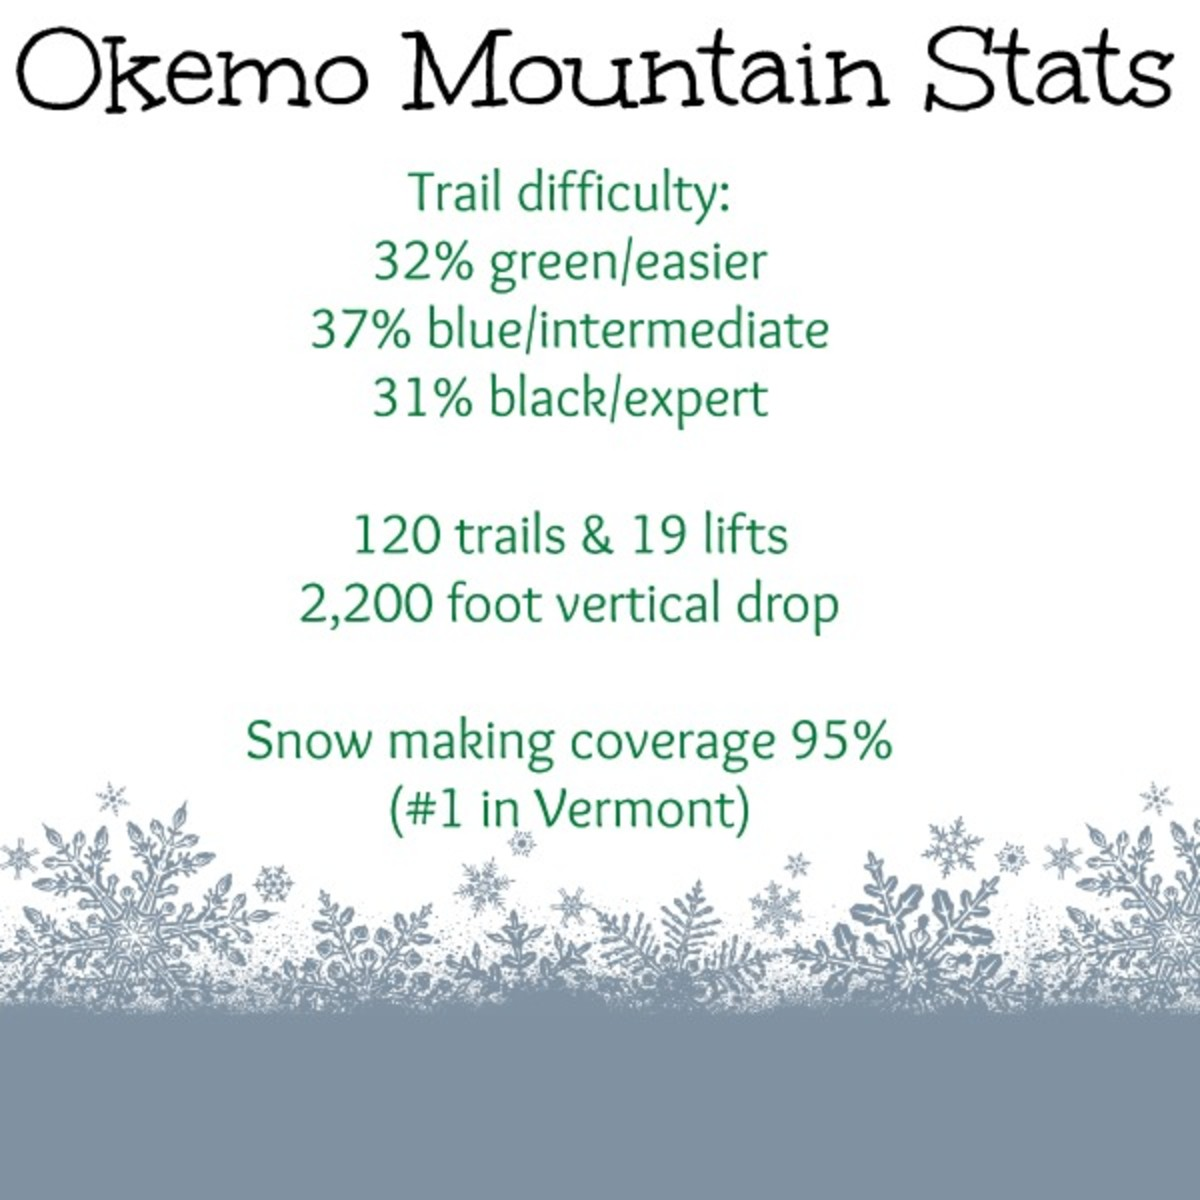 okemo mountain stats